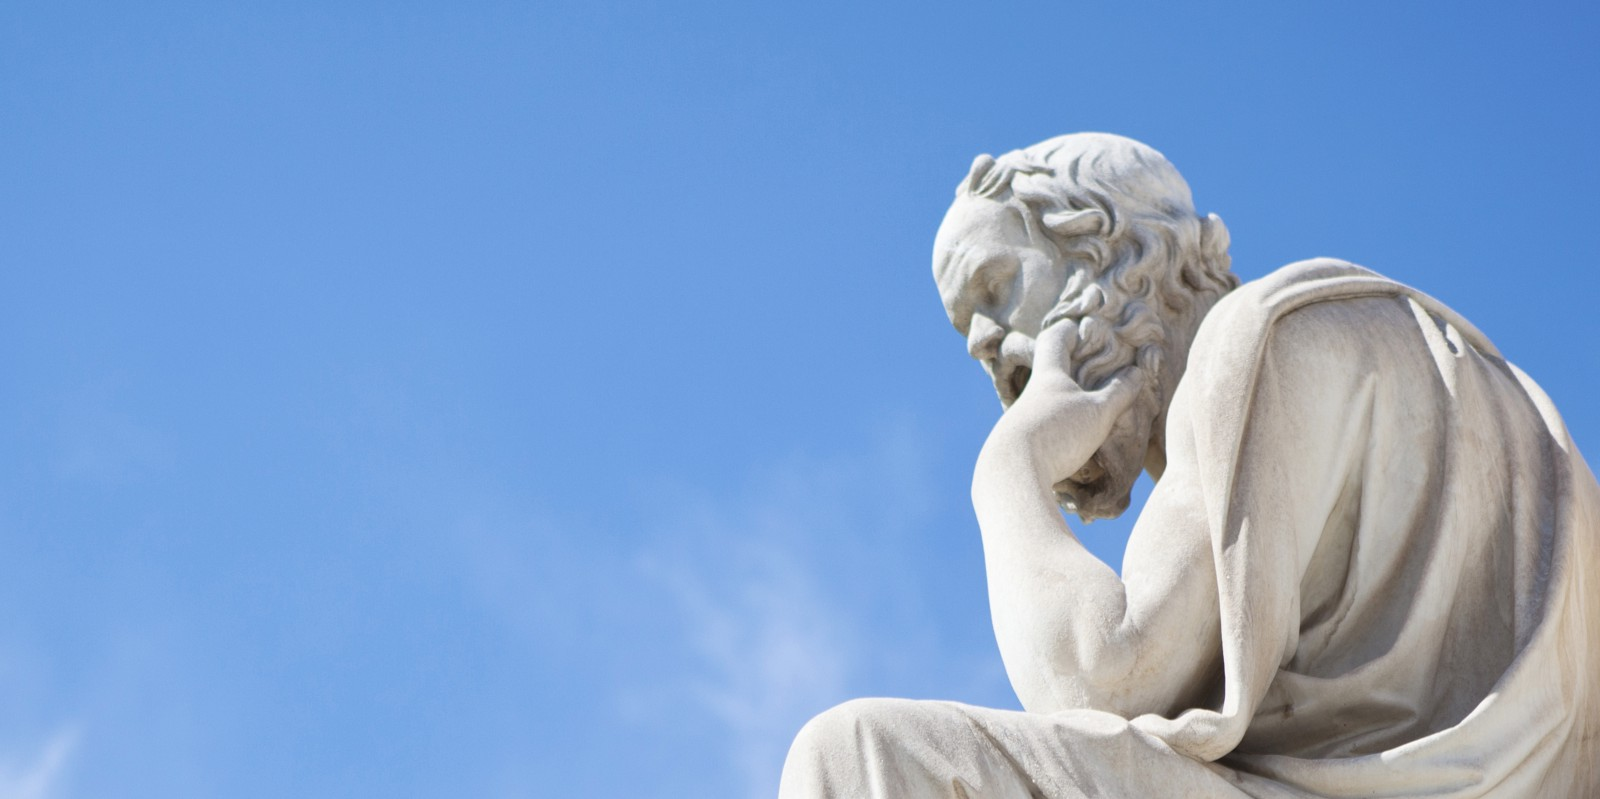 philosophical background Philosophy teaches a number of skills that are valuable in a variety of professions the hallmark of philosophy education is critical thinking and inductive reasoning.